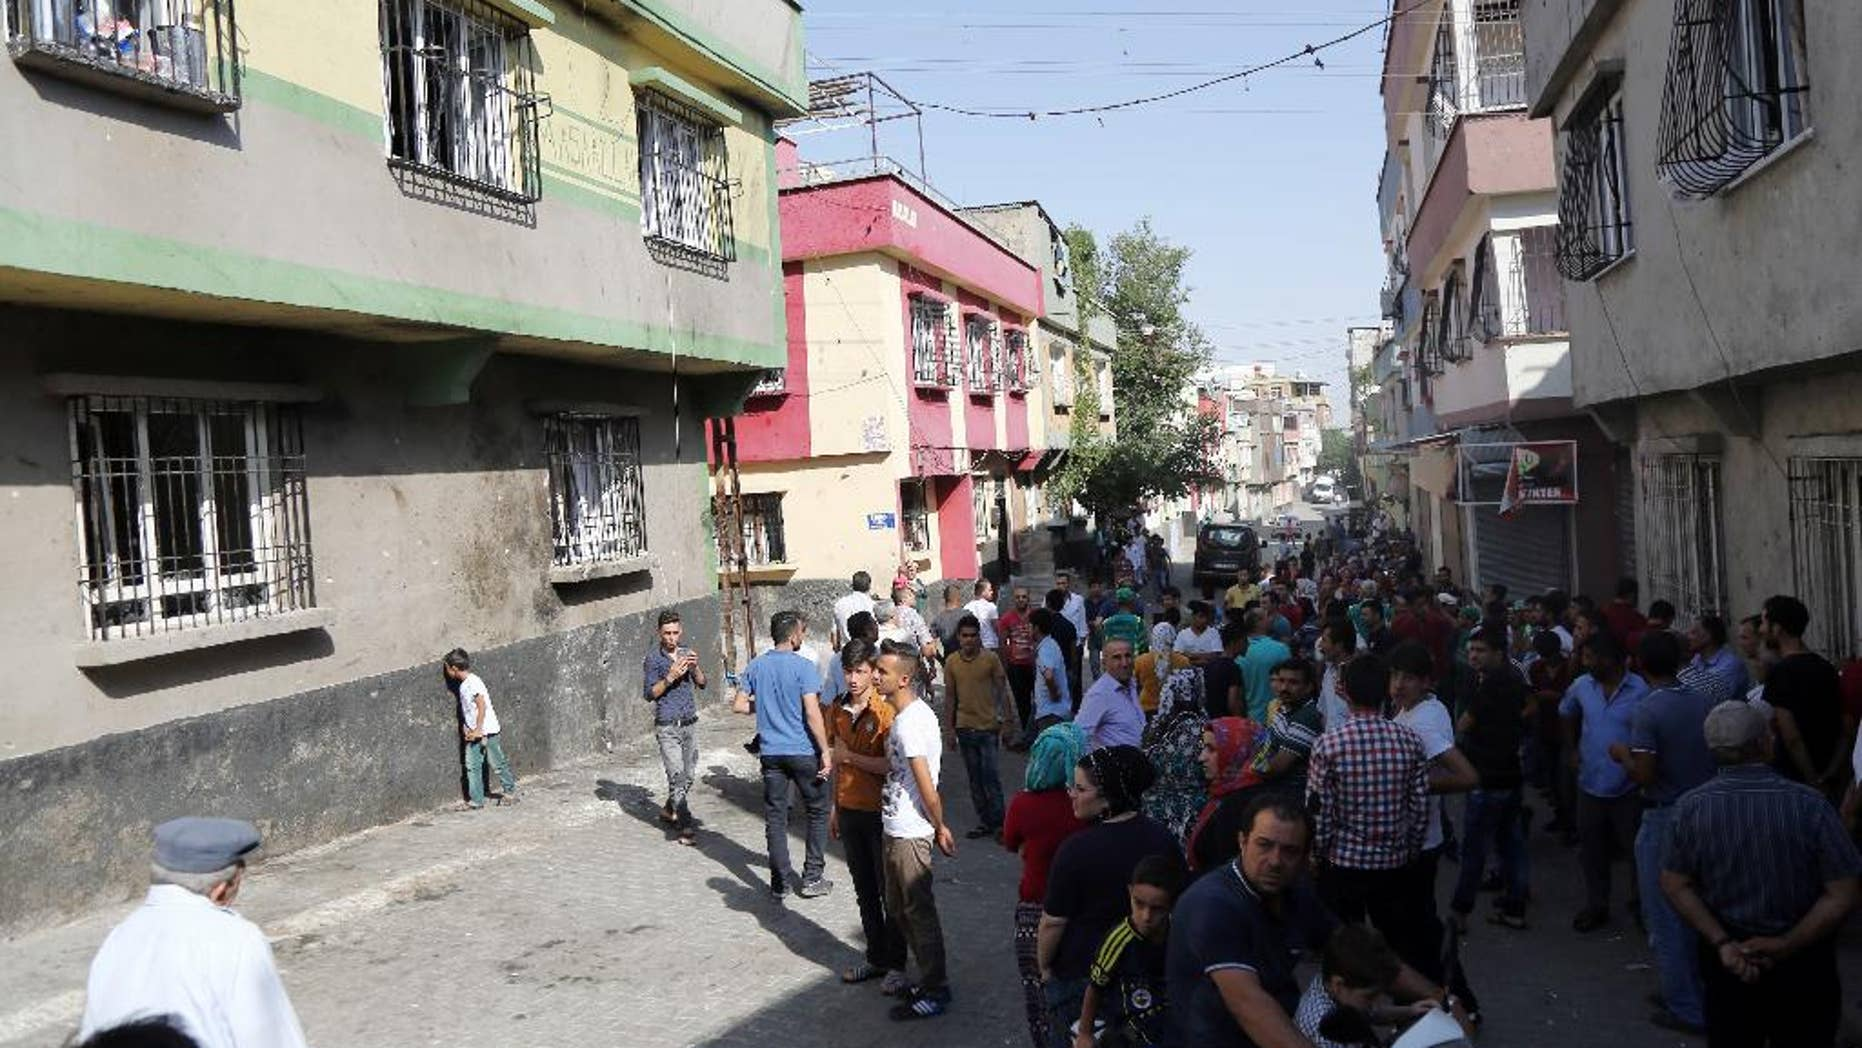 """People gather near to the scene of Saturday's bomb attack targeting an outdoor wedding party that killed dozens in Gaziantep, southeastern Turkey, Sunday, Aug. 21, 2016. Deputy Prime Minister Mehmet Simsek said the """"barbaric"""" attack in Gaziantep, near the border with Syria, on Saturday appeared to be a suicide bombing. Turkish authorities have put a temporary ban on distribution of images relating to Saturday's Gaziantep attack within Turkey. (AP Photo/Mahmut Bozarslan)"""